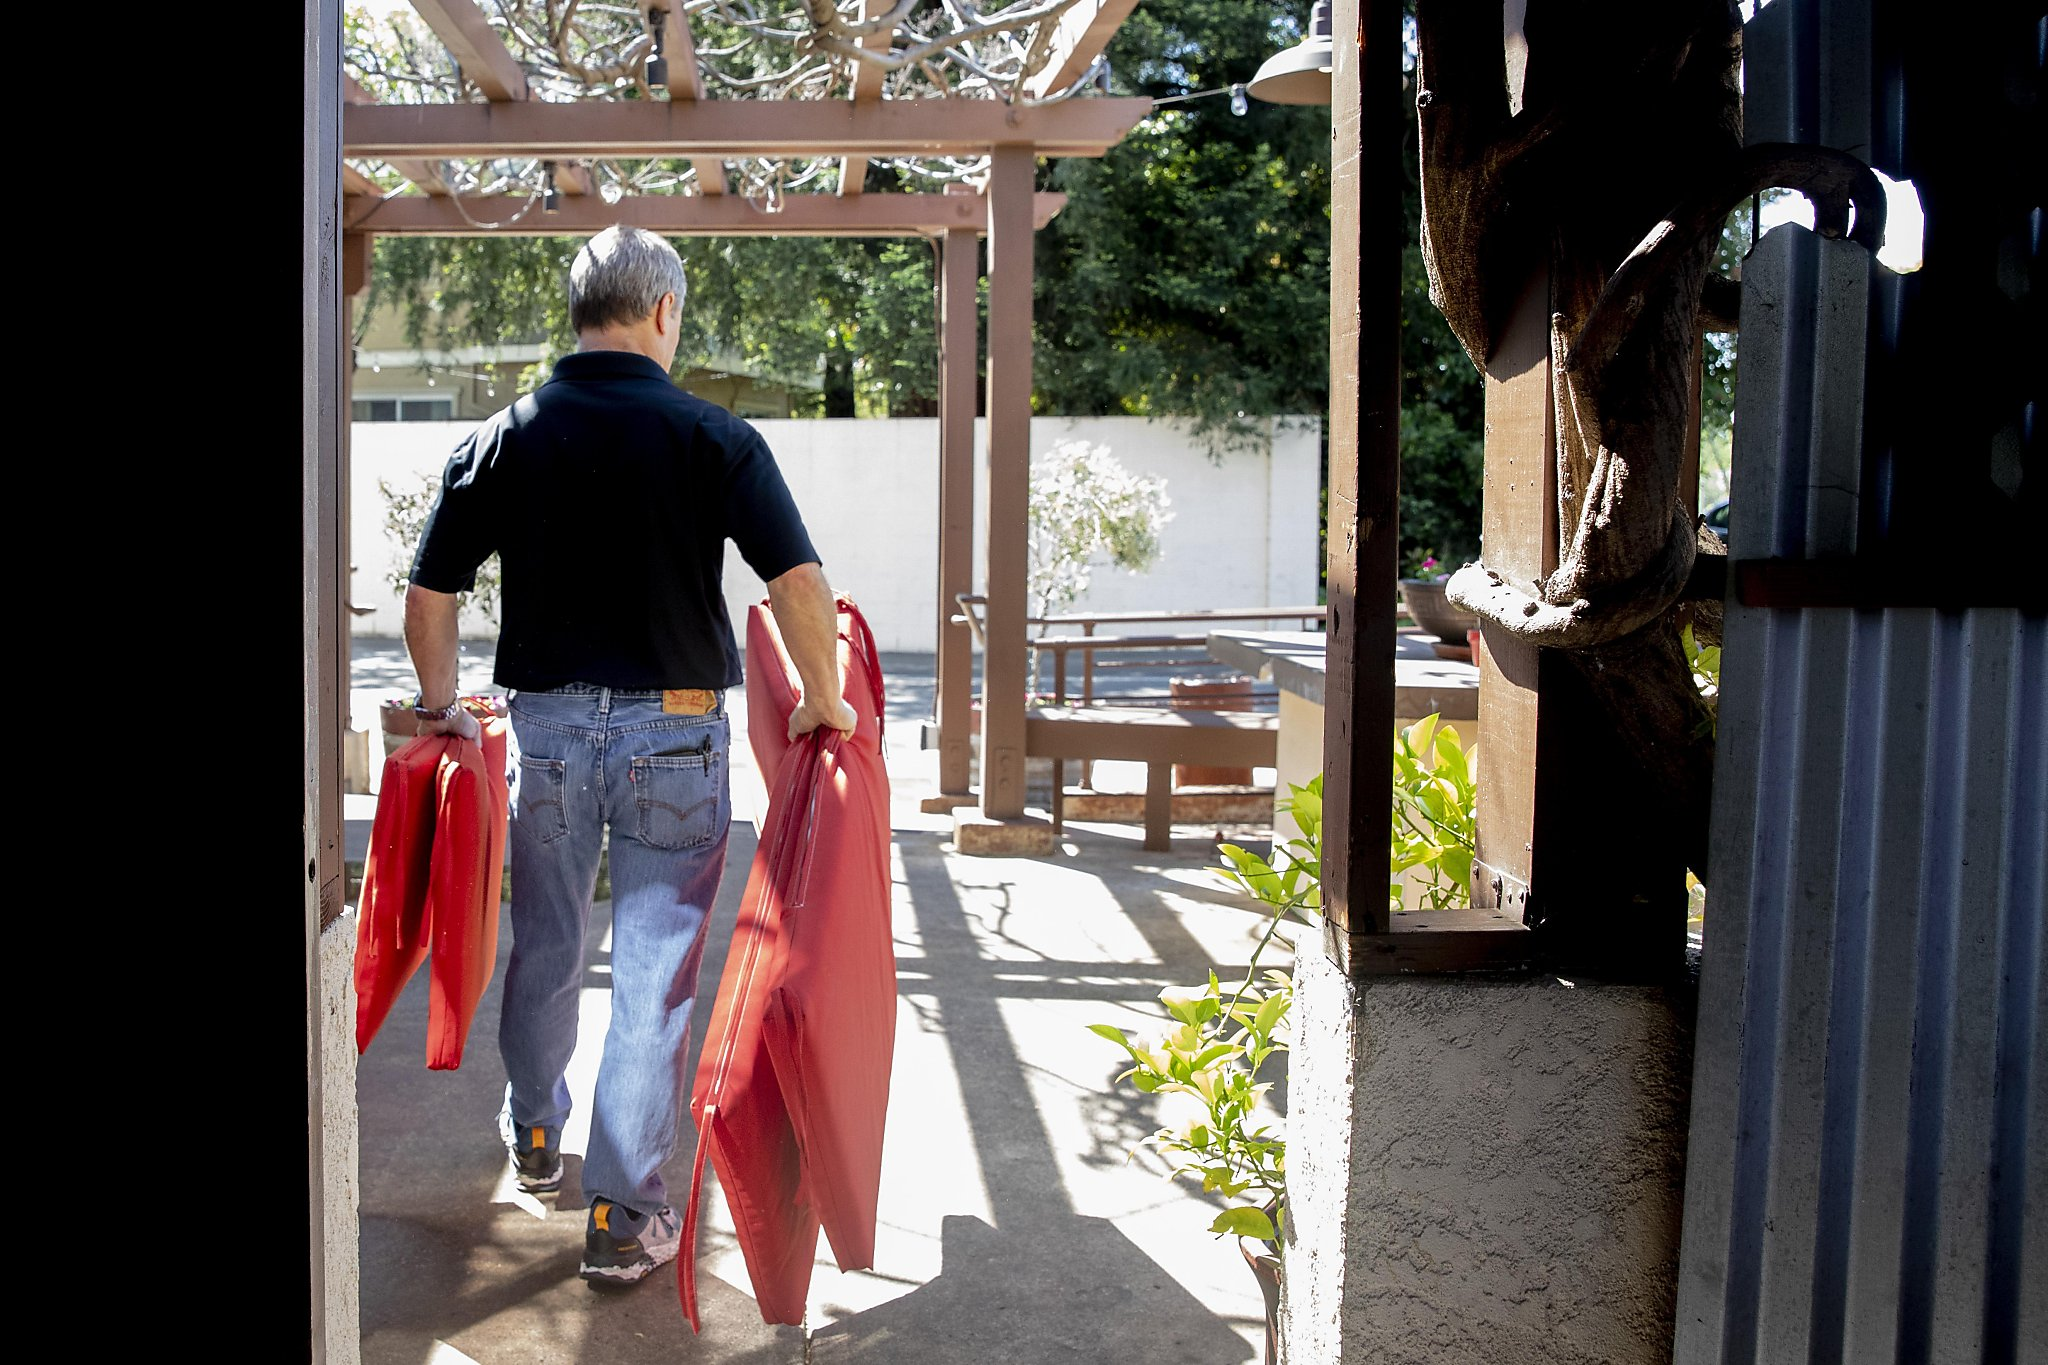 Bay Area restaurants keep flouting dining restrictions. Are health departments enforcing the rules?